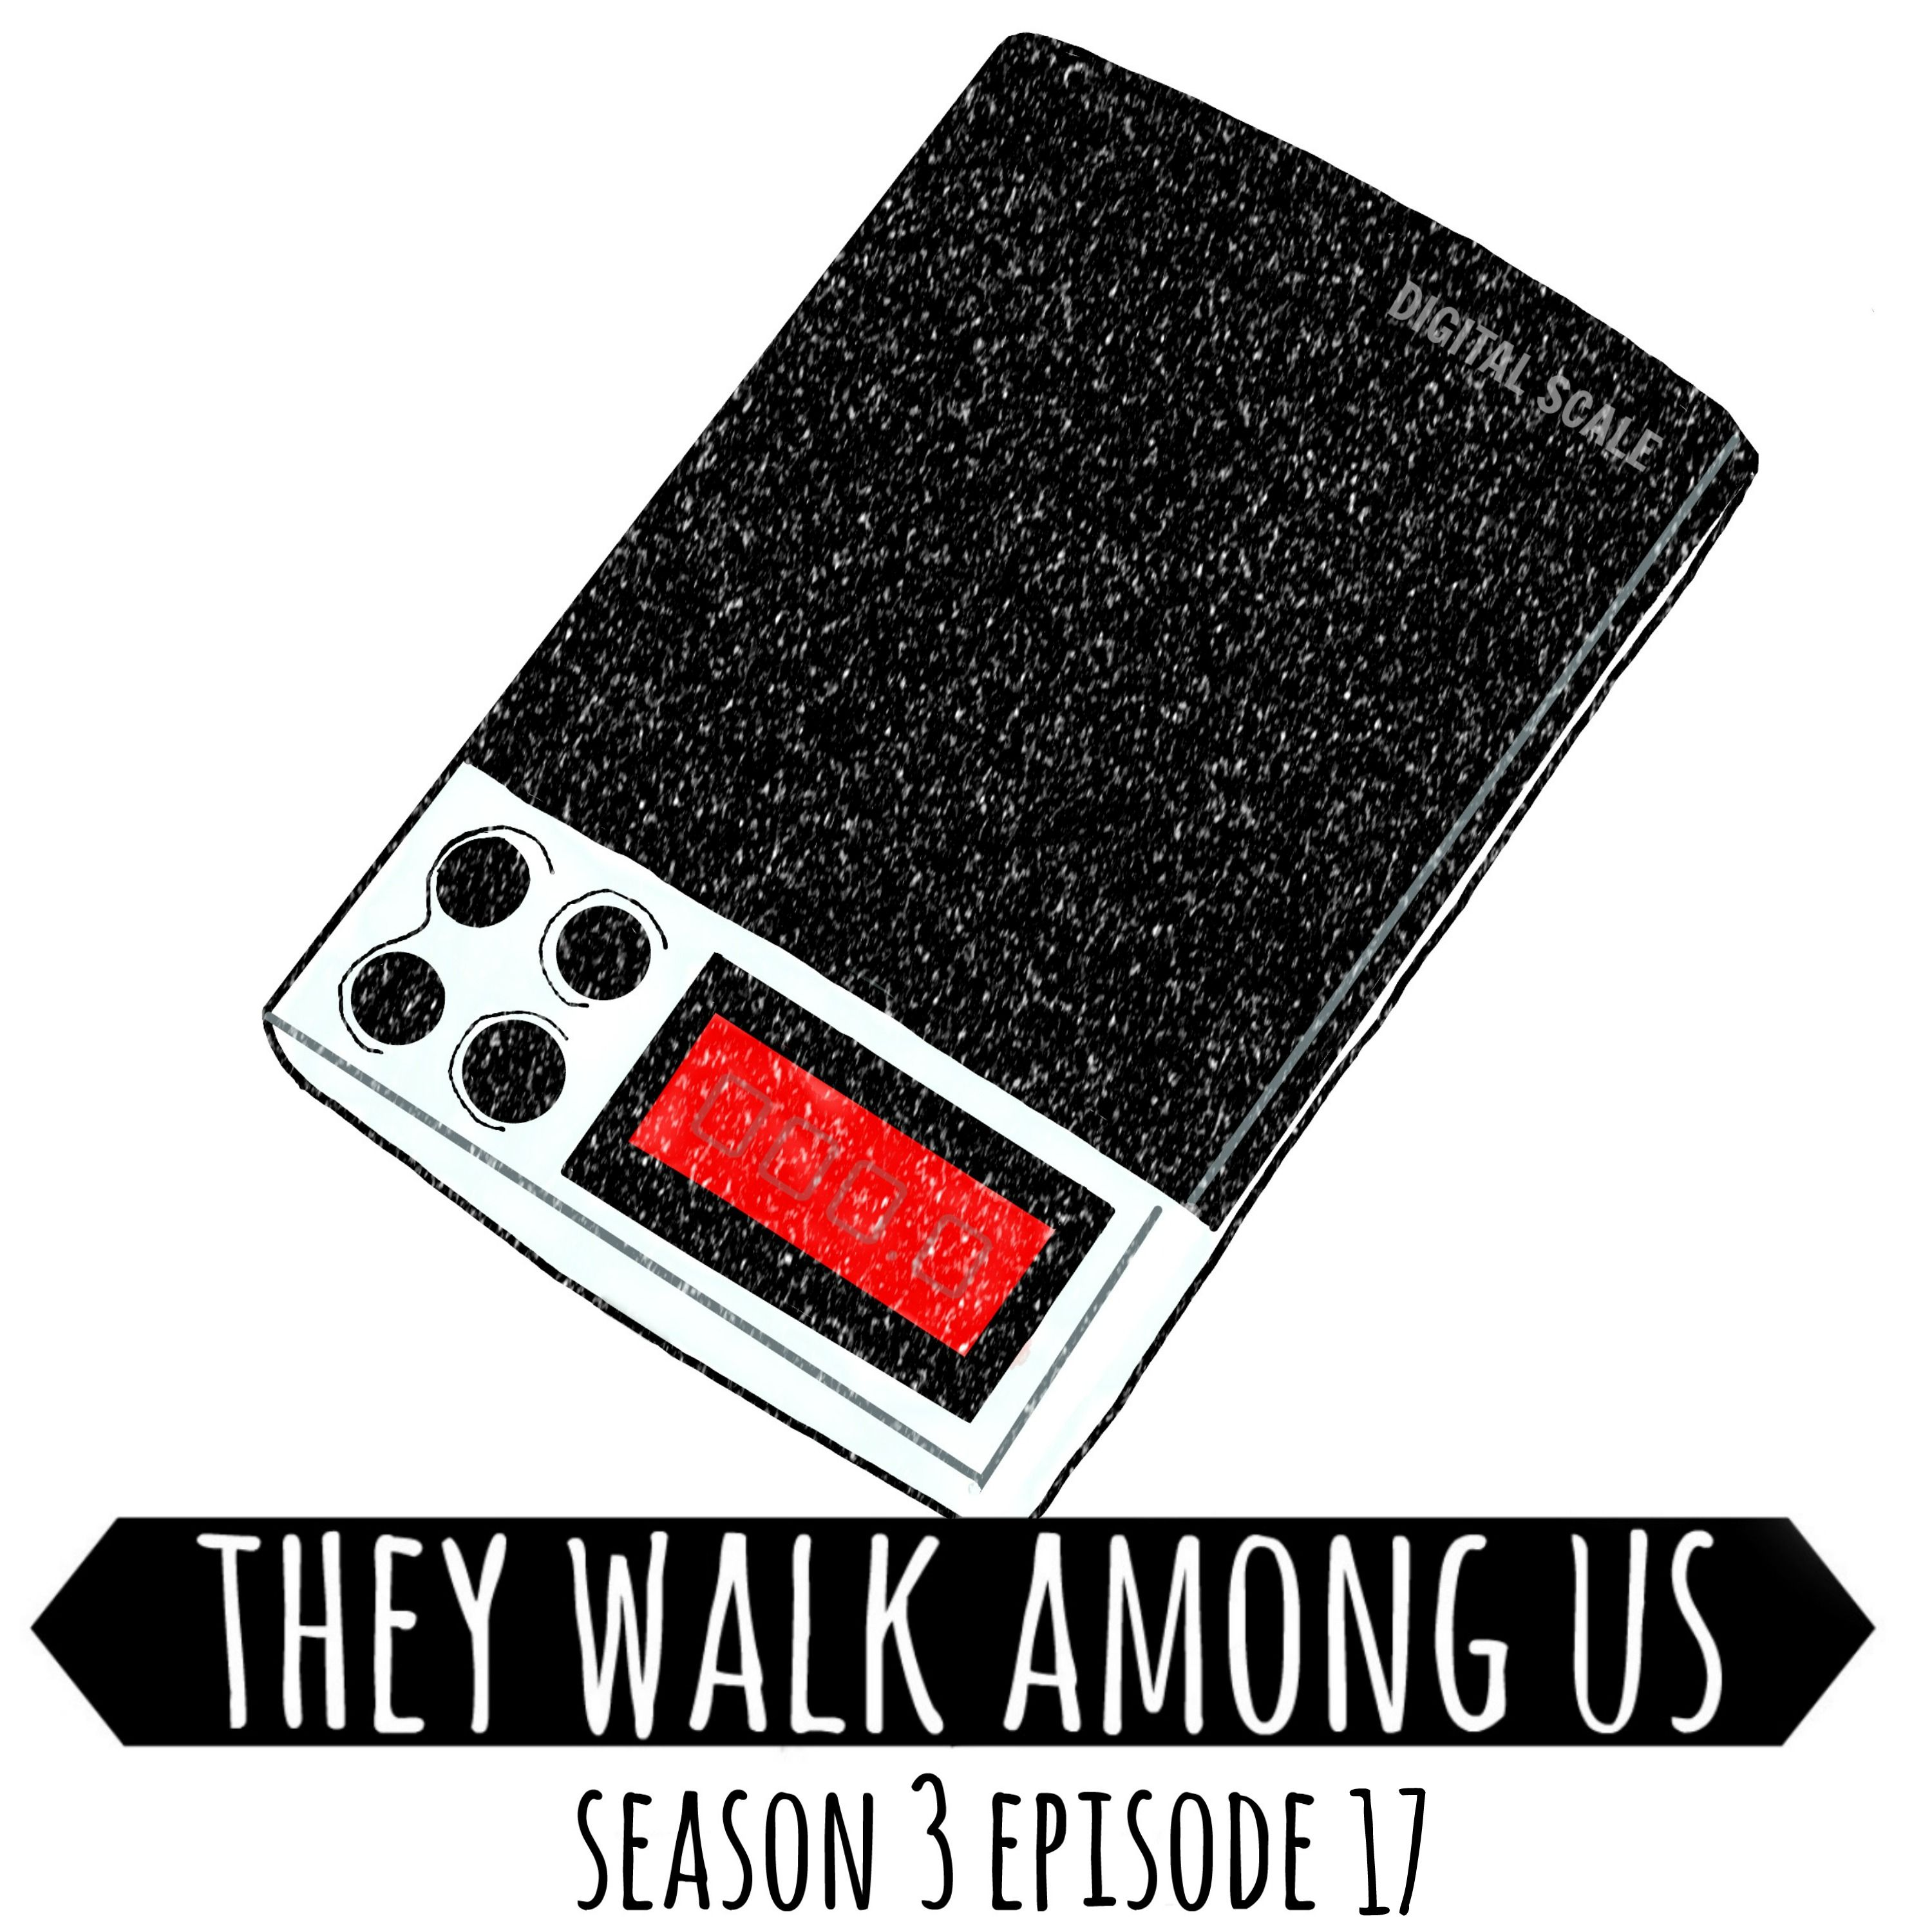 Season 3 - Episode 17